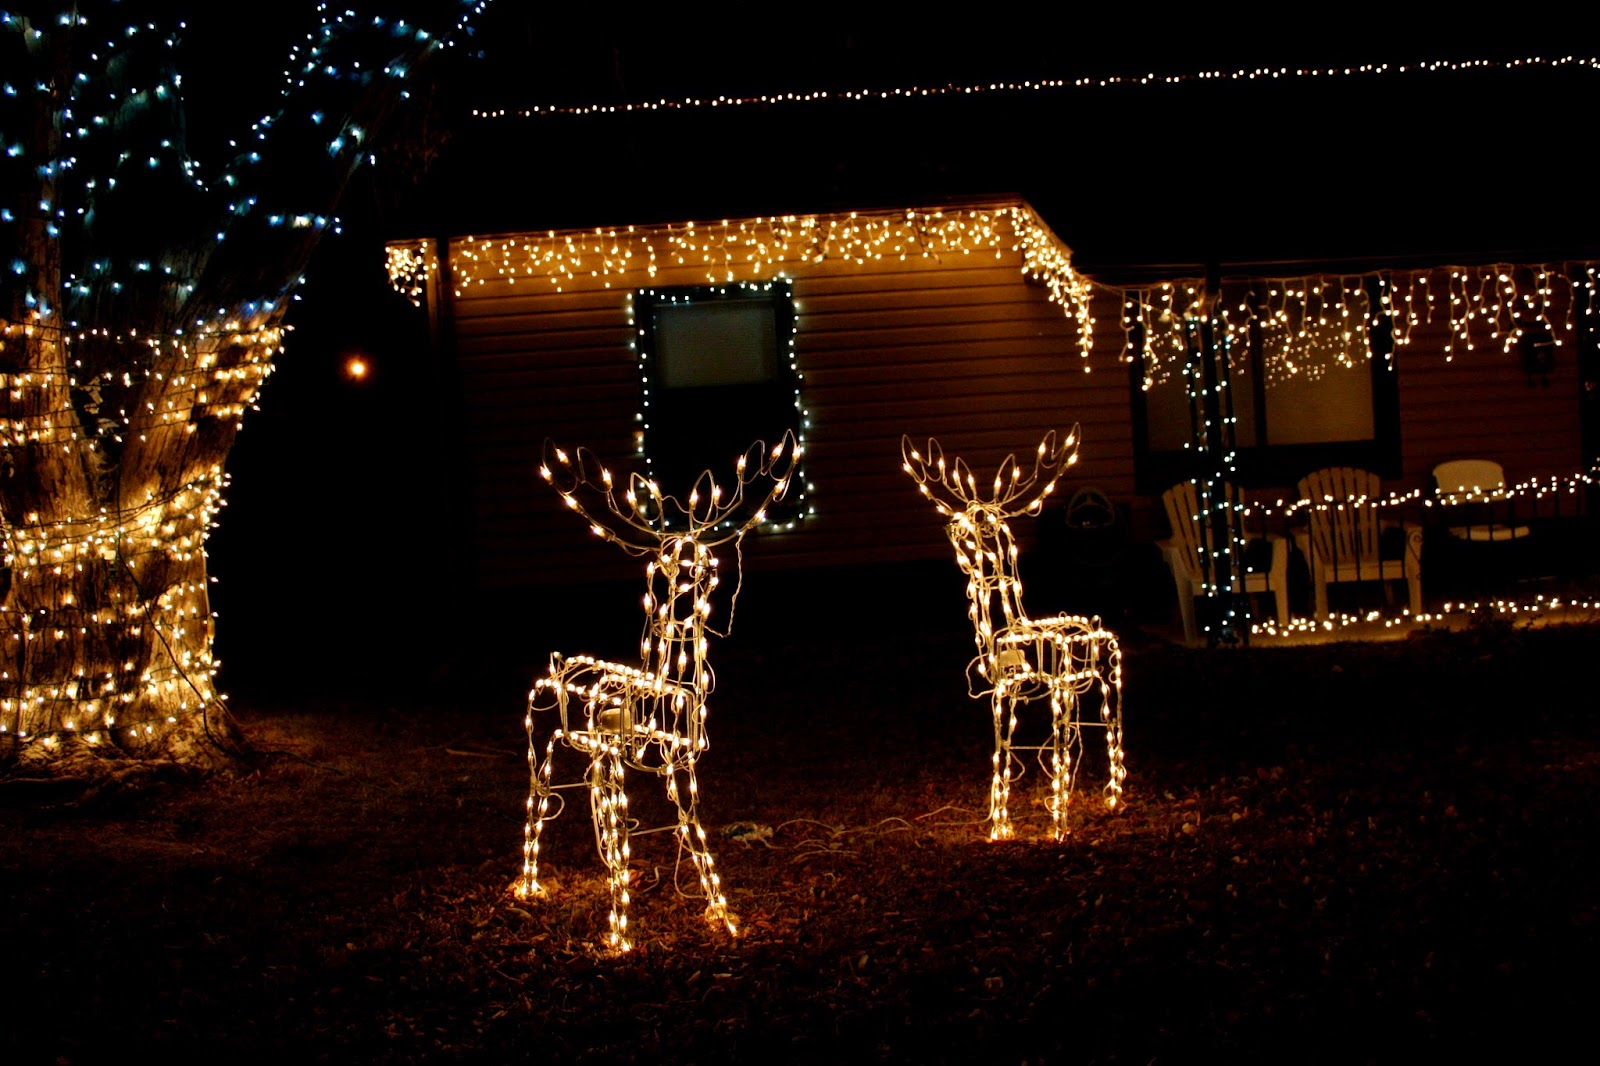 Merry Christmas 2015 Outdoor Light Decoration Images 720p